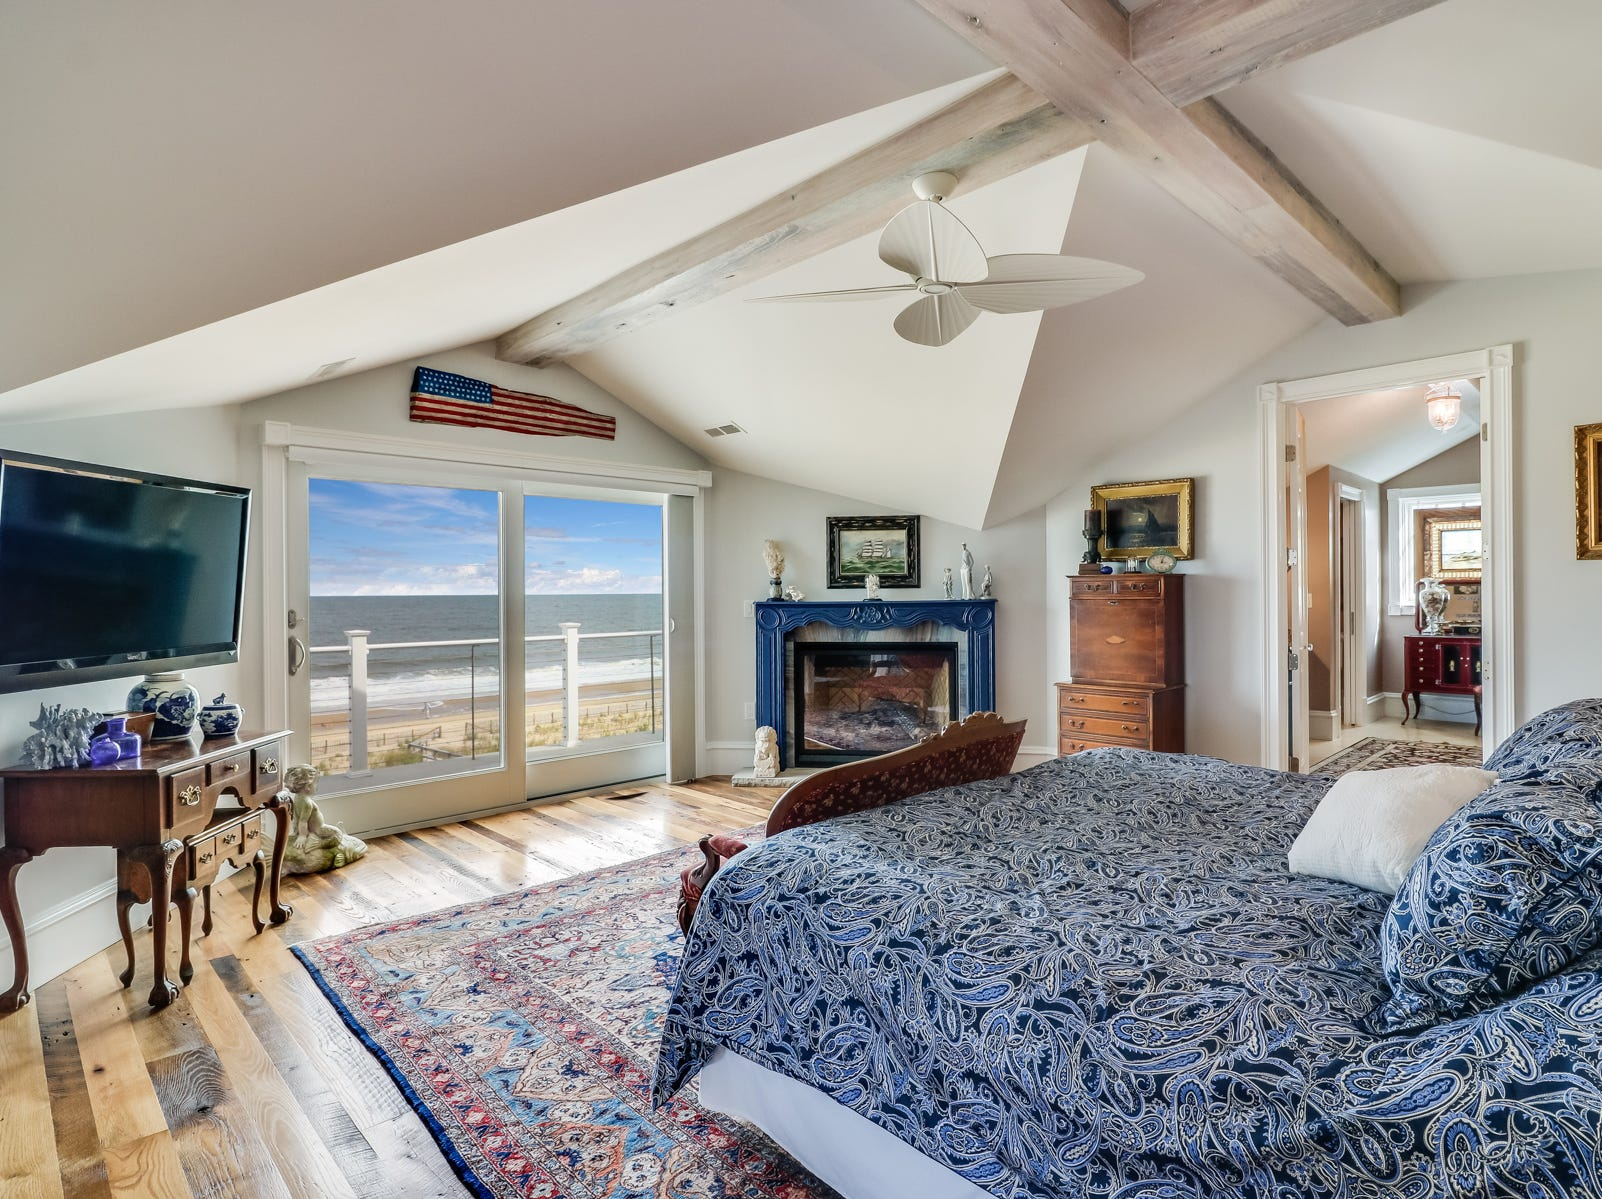 This bedroom at 18 Ocean Drive in North Beach features an angled and beamed ceiling and ocean views.